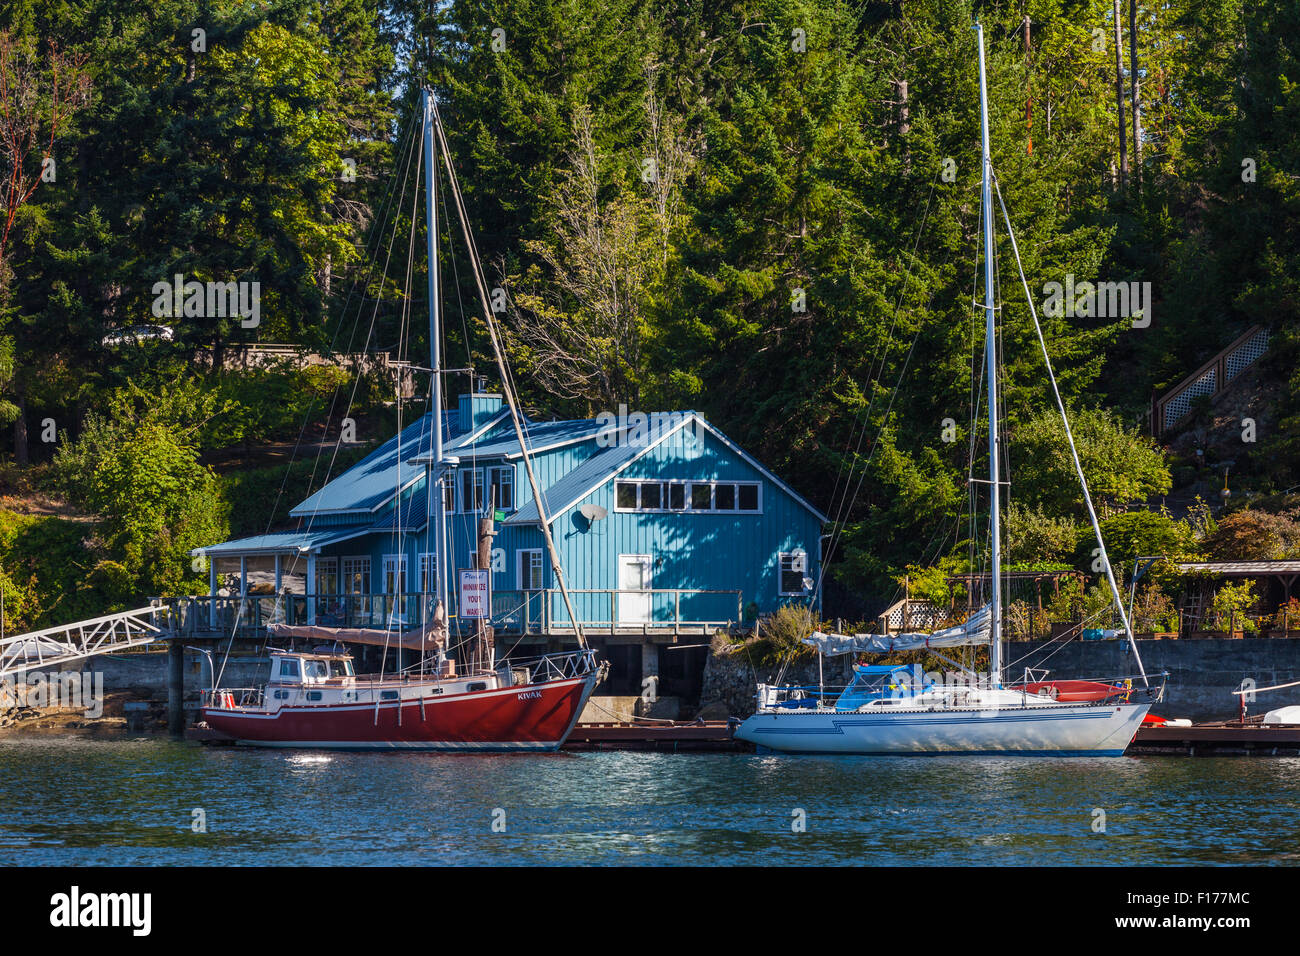 Two sailing vessels docked in Pender Harbour on the Sunshine Coast of British Columbia - Stock Image